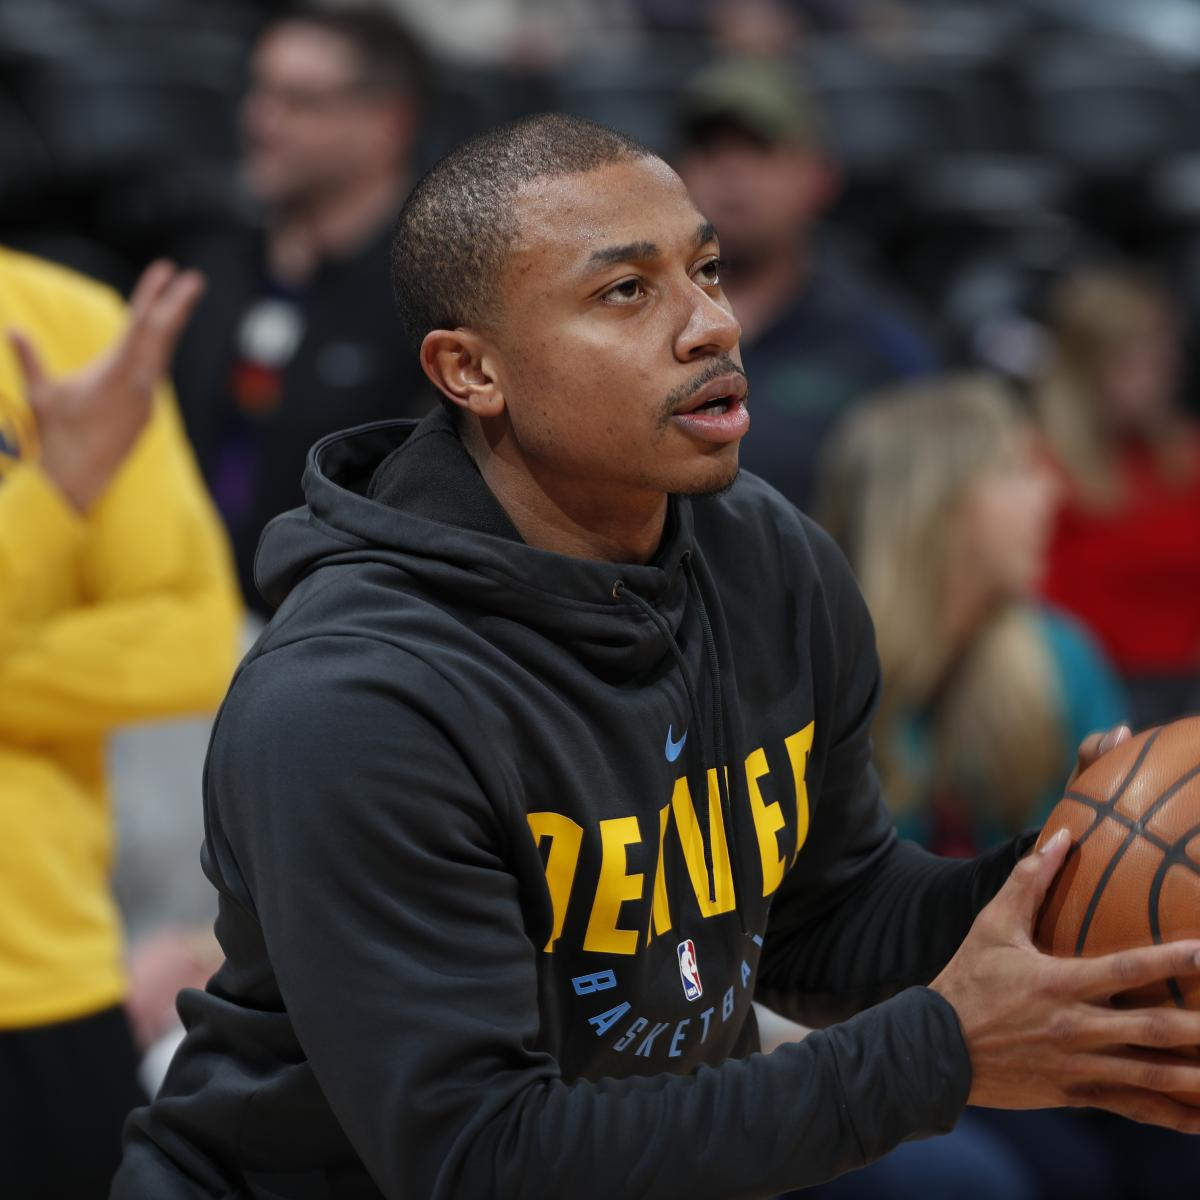 Isaiah Thomas To Remain With Nuggets; Won't Report For G